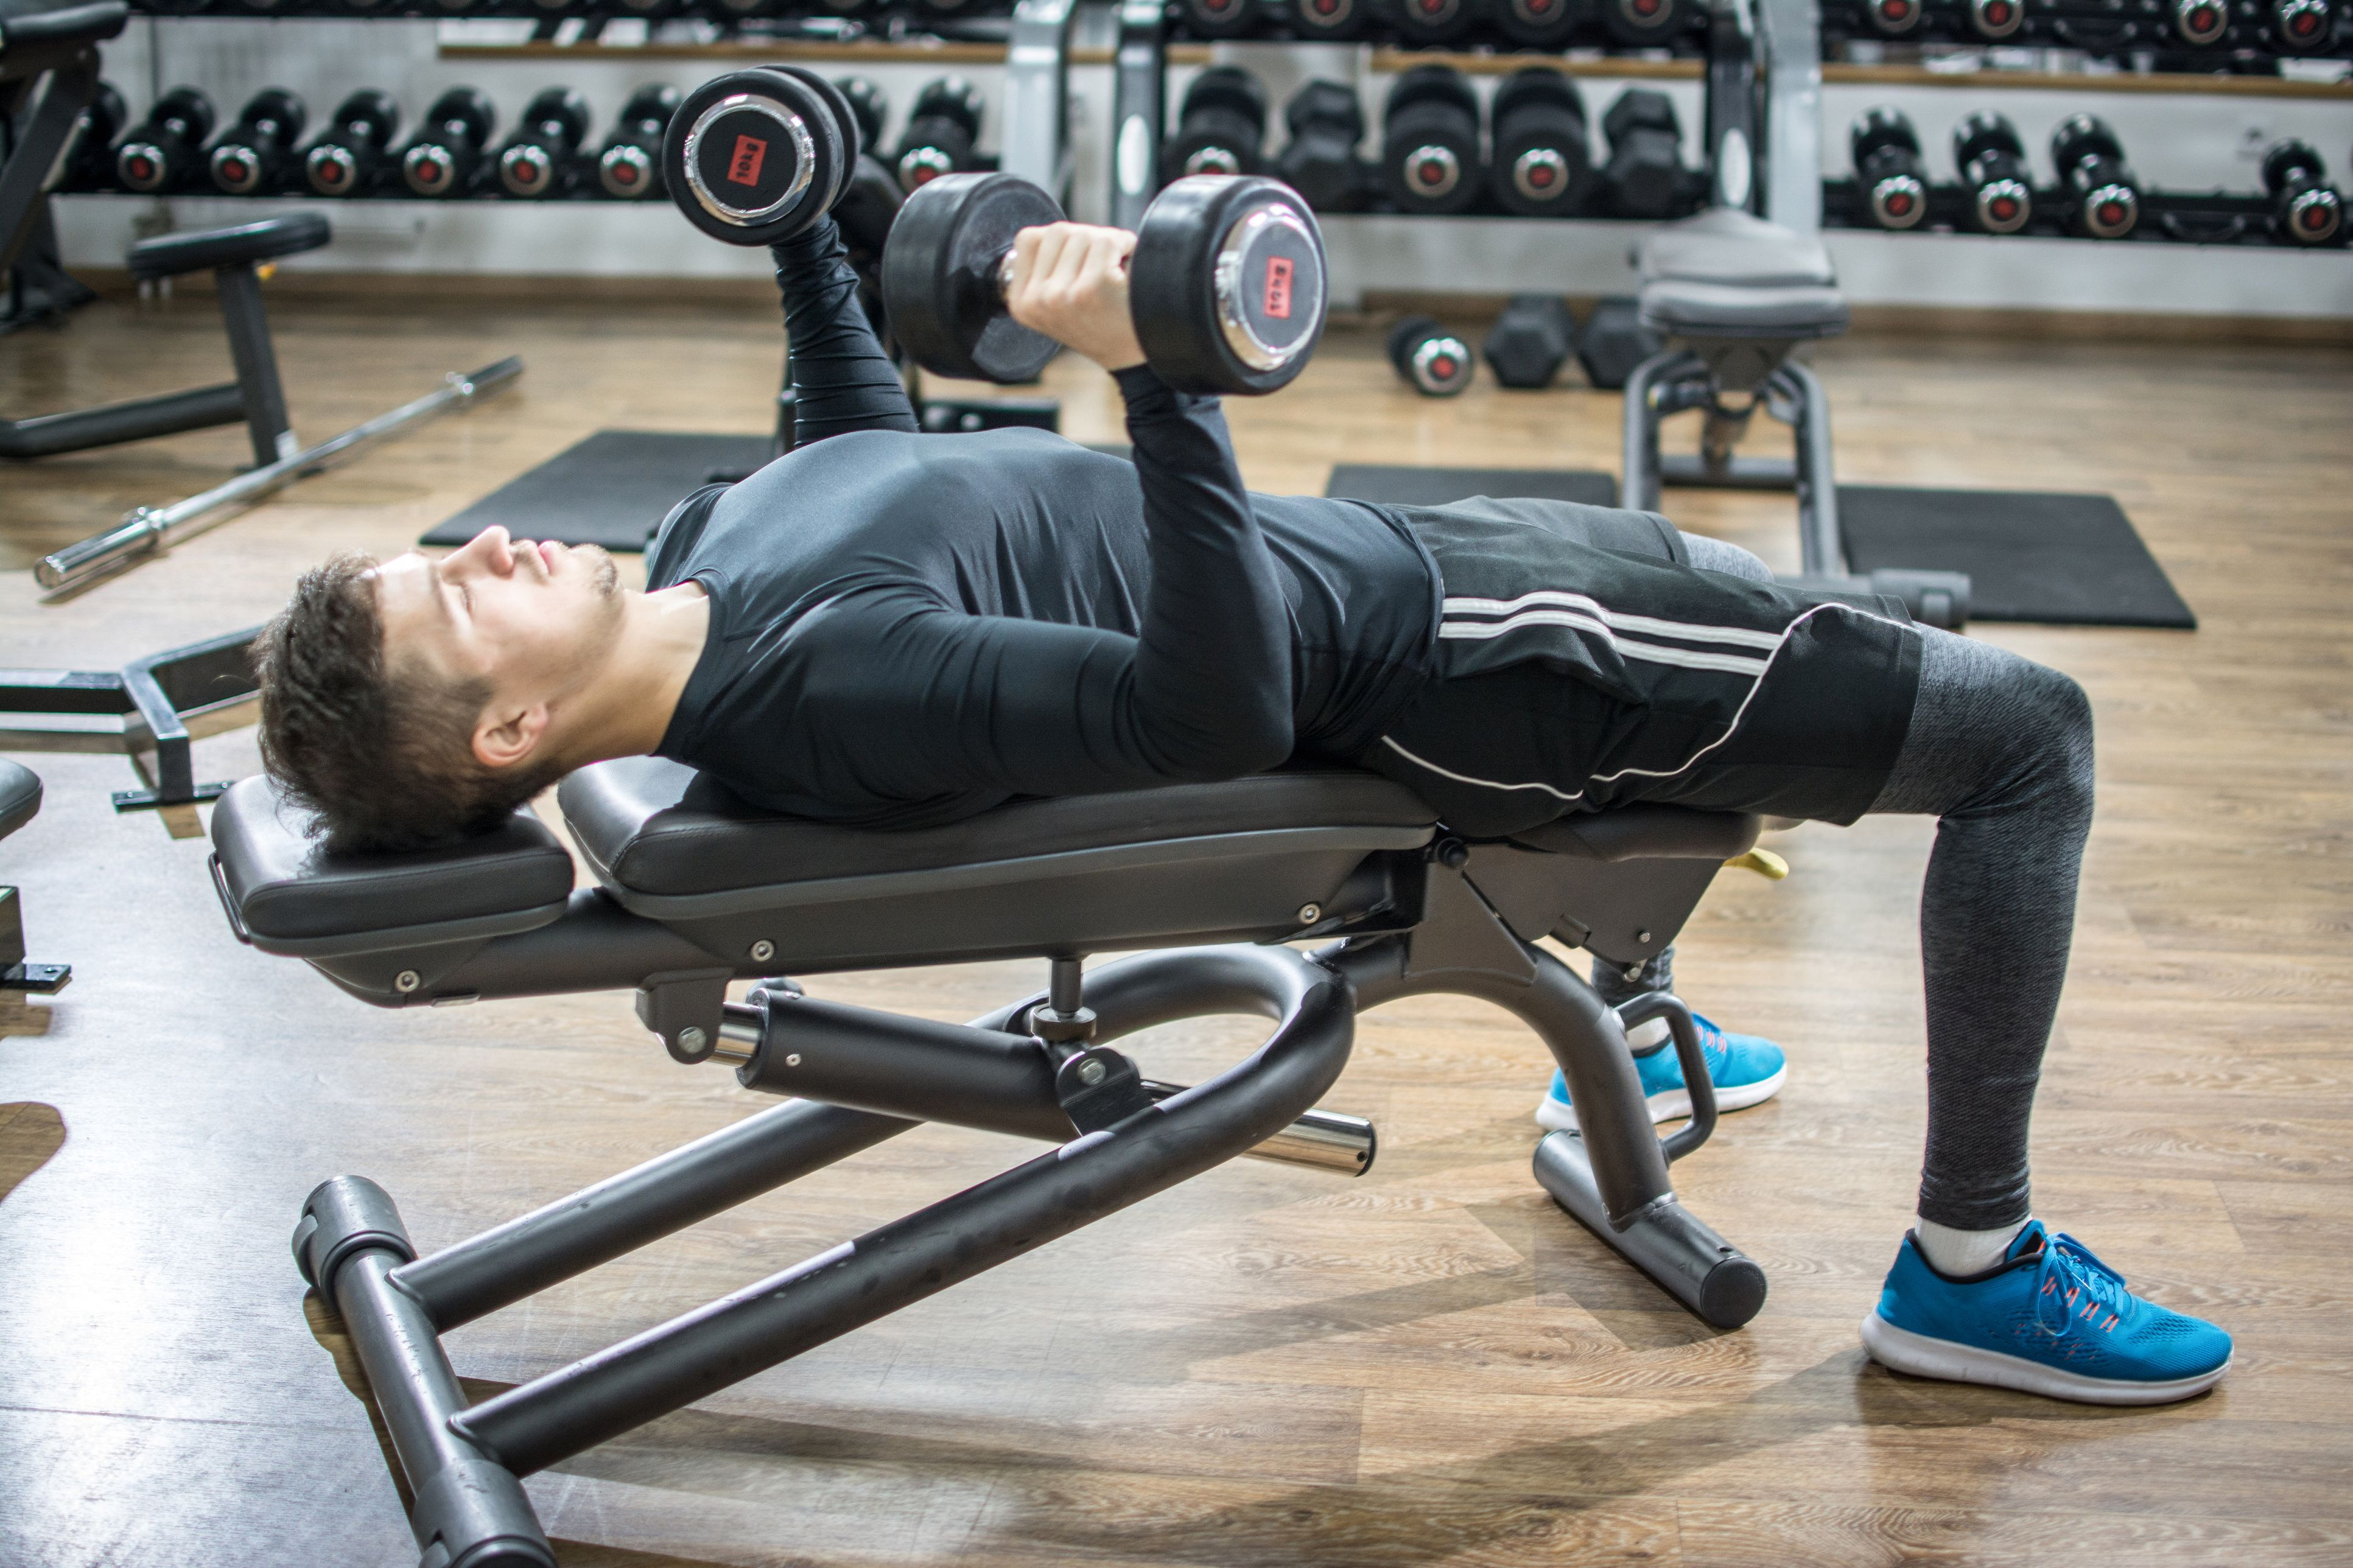 Awesome Handsome Young Man Lying On Exercise Bench And Lifting Dumbbells In Gym